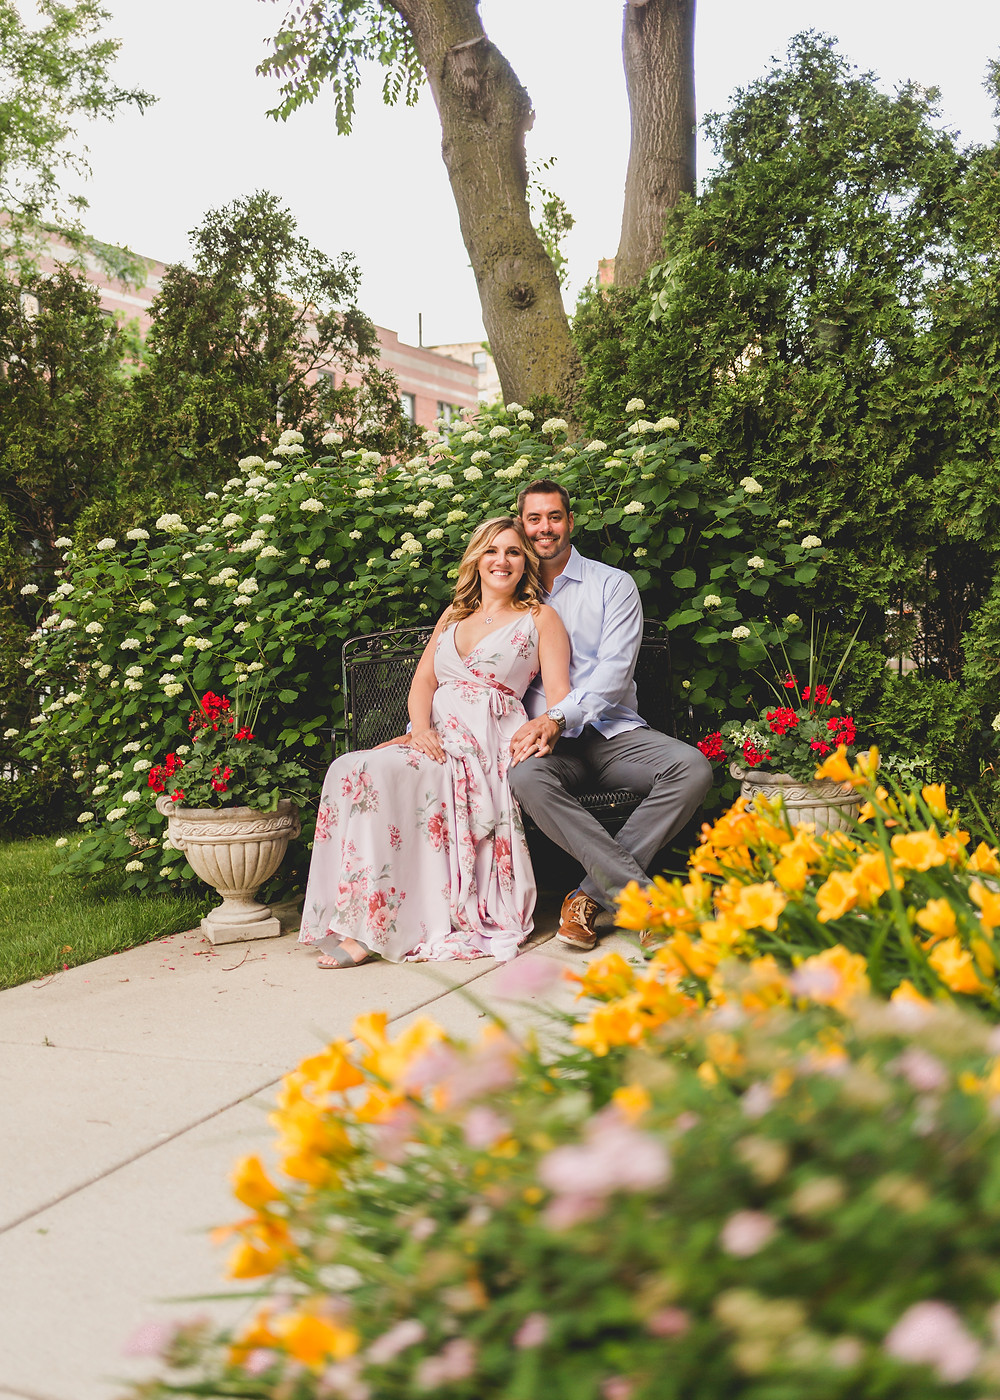 Summer engagement session, Composed and Exposed Photography, Chicago wedding photographer